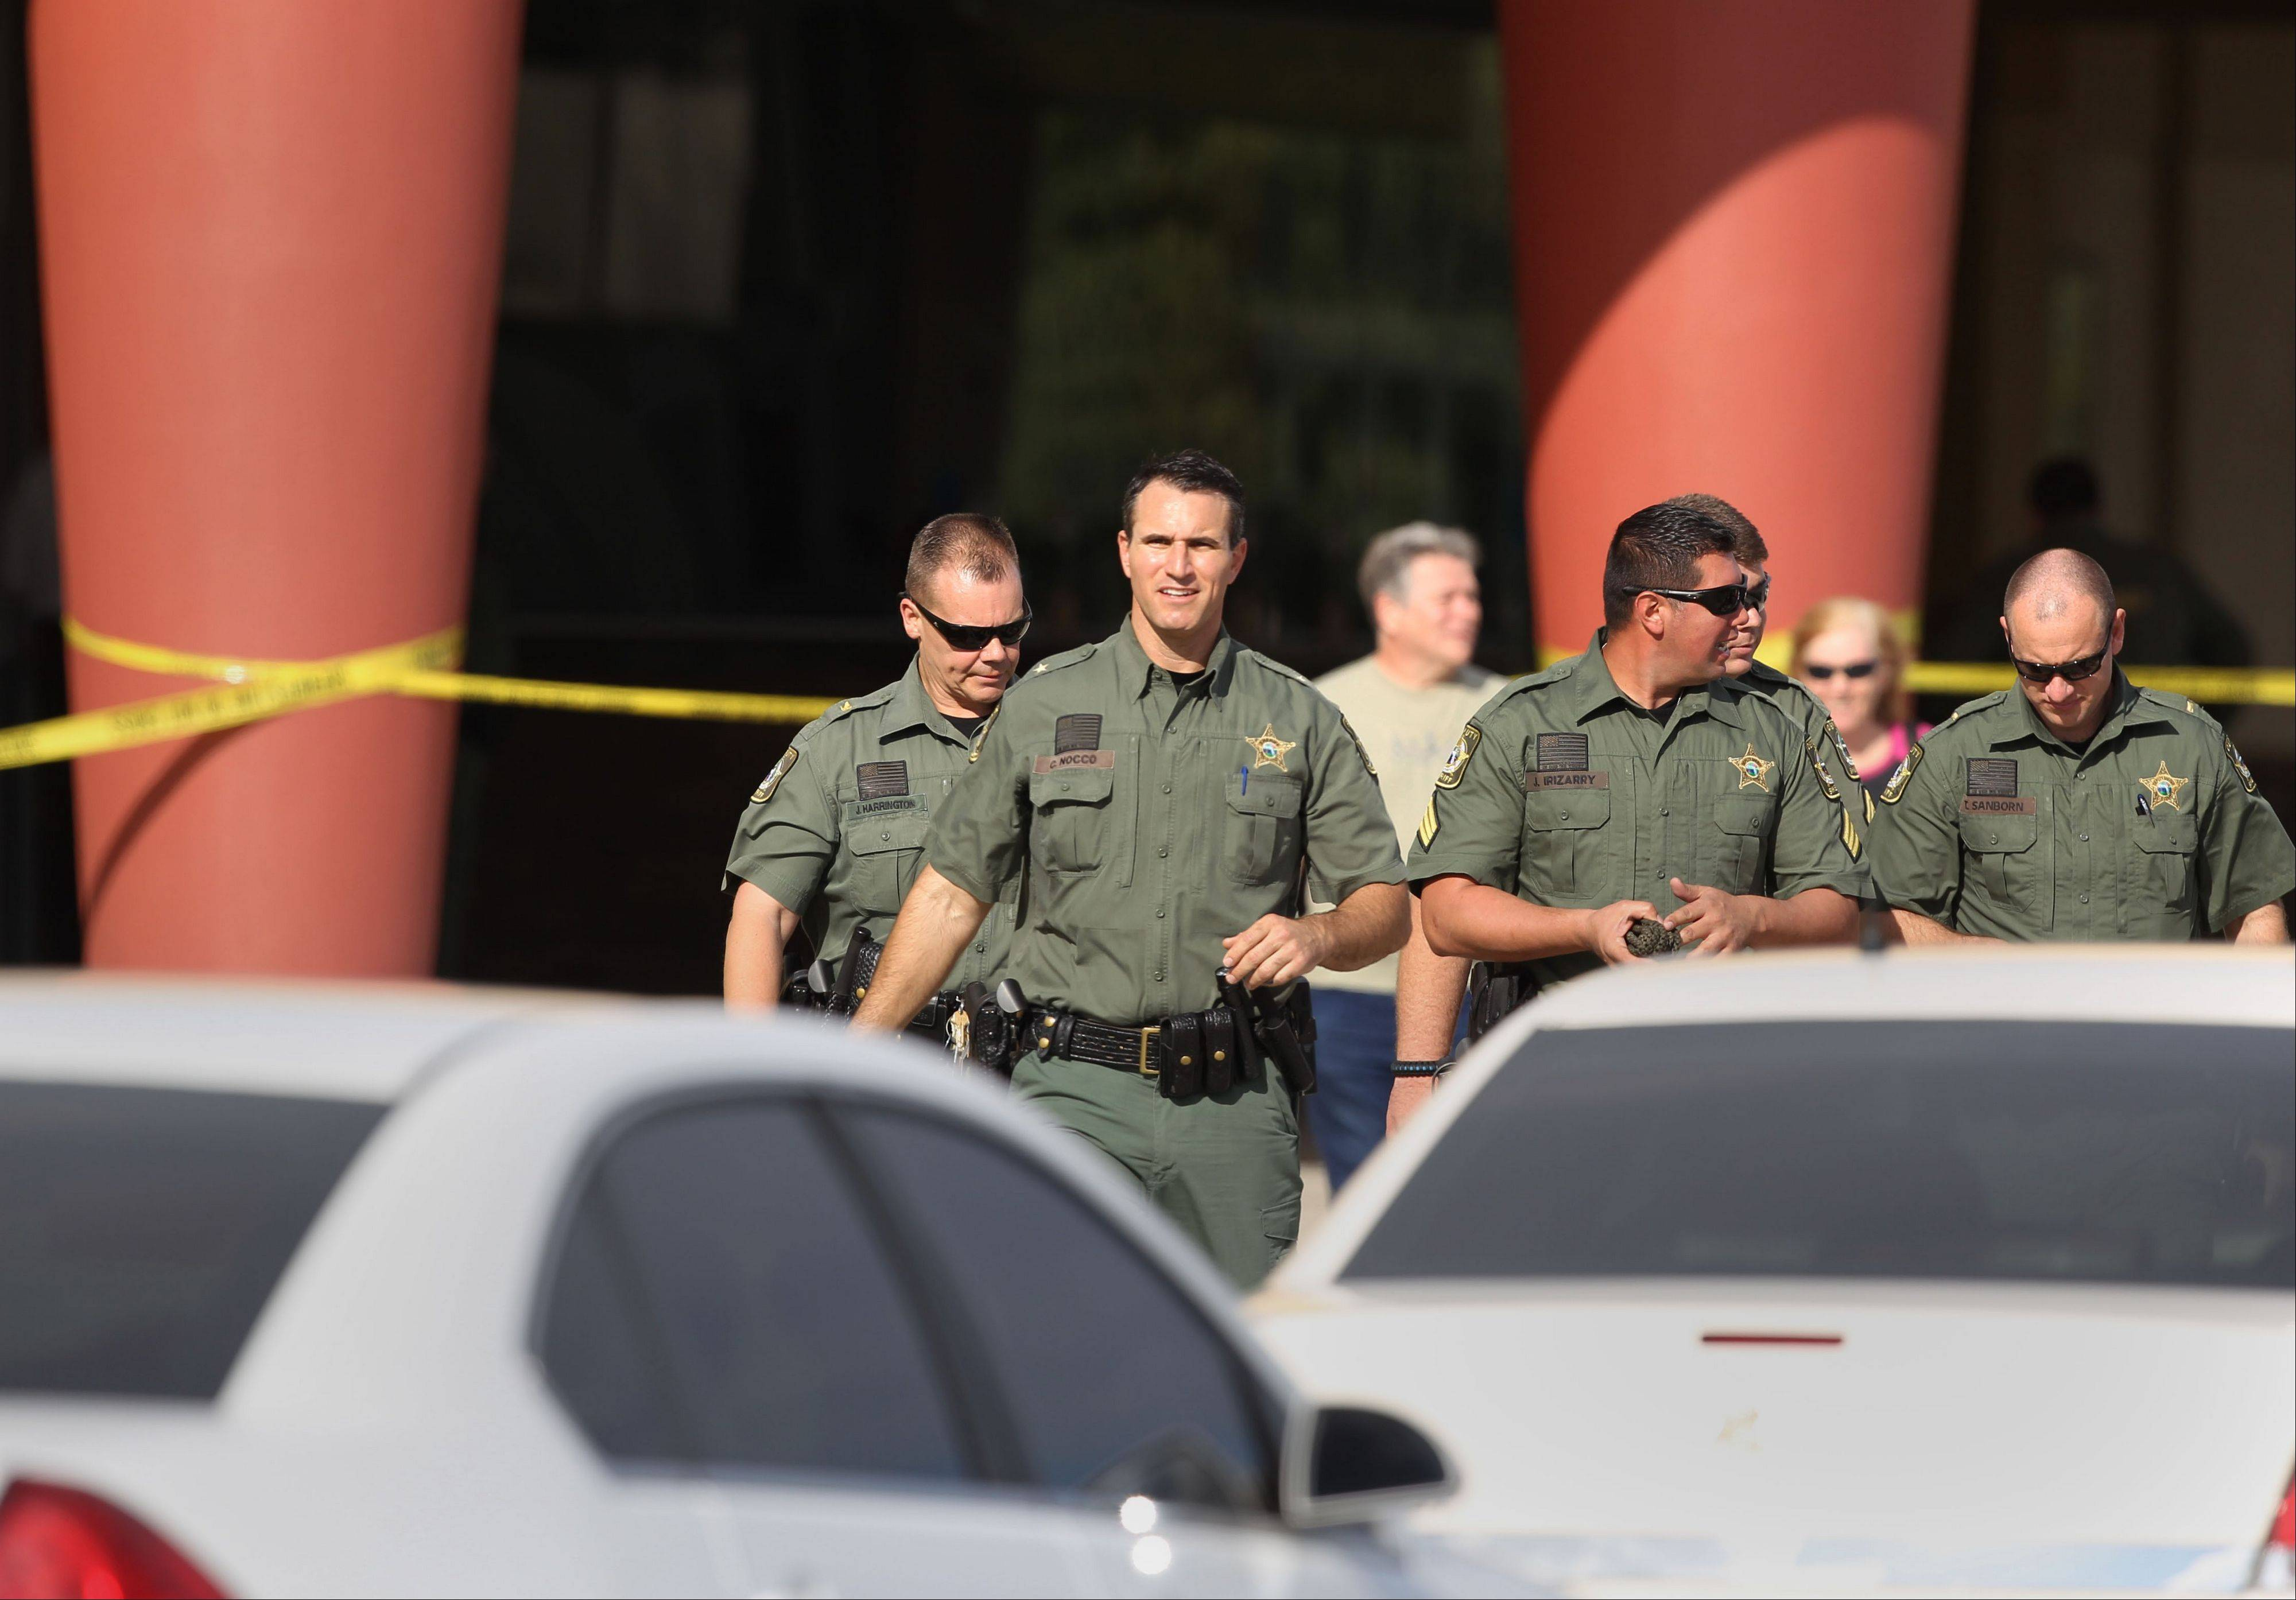 Man fatally shot at Fla. theater over texting